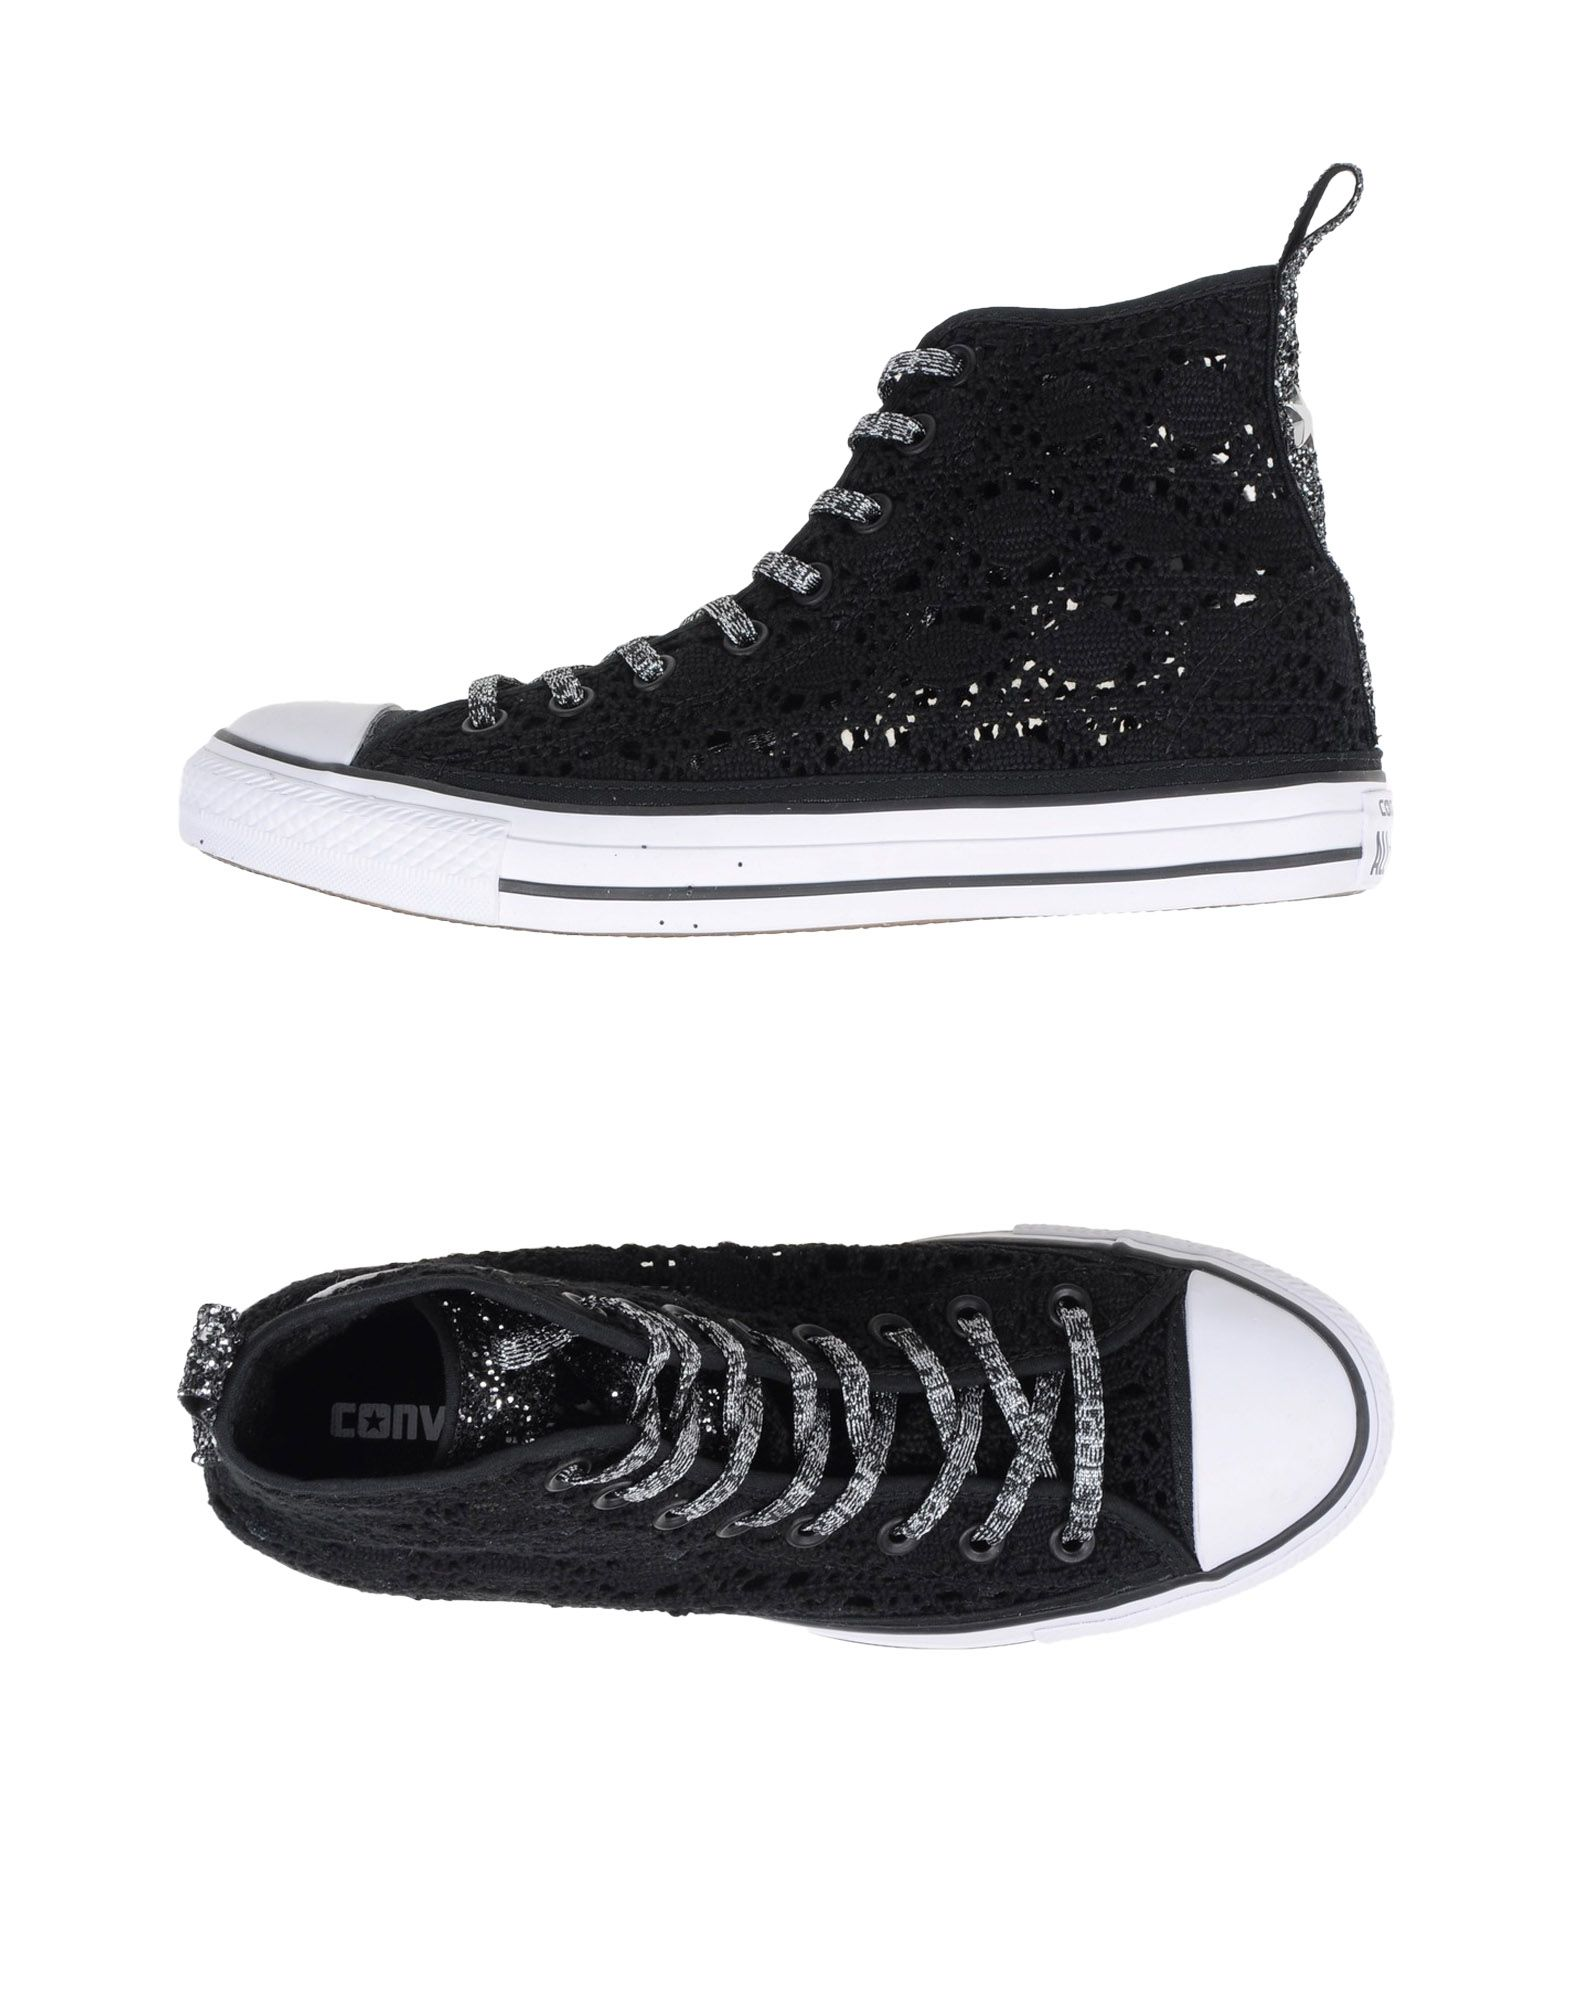 Converse Limited Edition Edition Edition All Star Hi Tex Crochet Ltd - Sneakers - Women Converse Limited Edition Sneakers online on  United Kingdom - 11015664OG 00712c